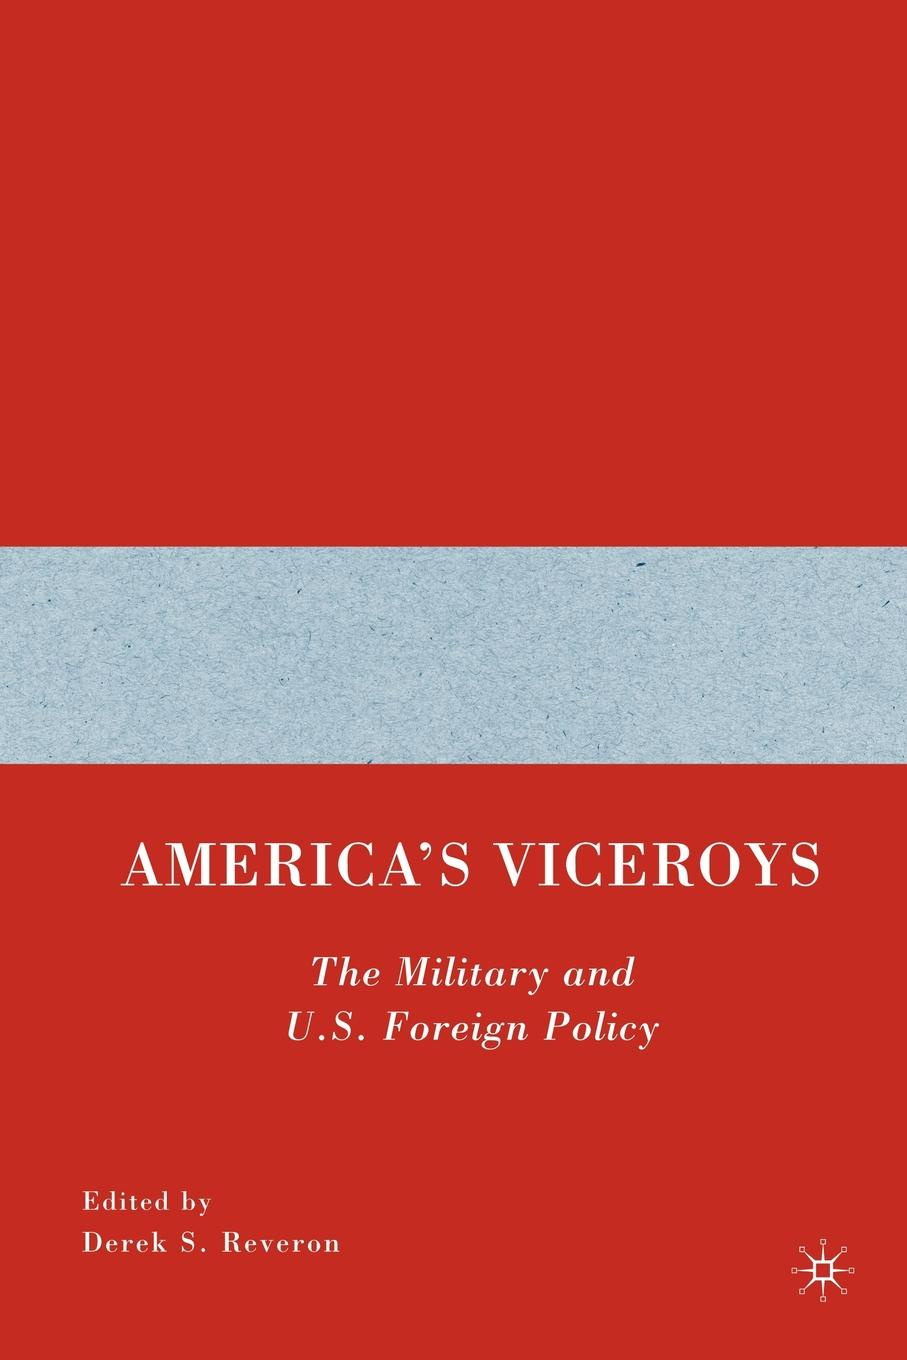 America's Viceroys. The Military and U.S. Foreign Policy henry shue basic rights subsistence affluence and u s foreign policy second edition